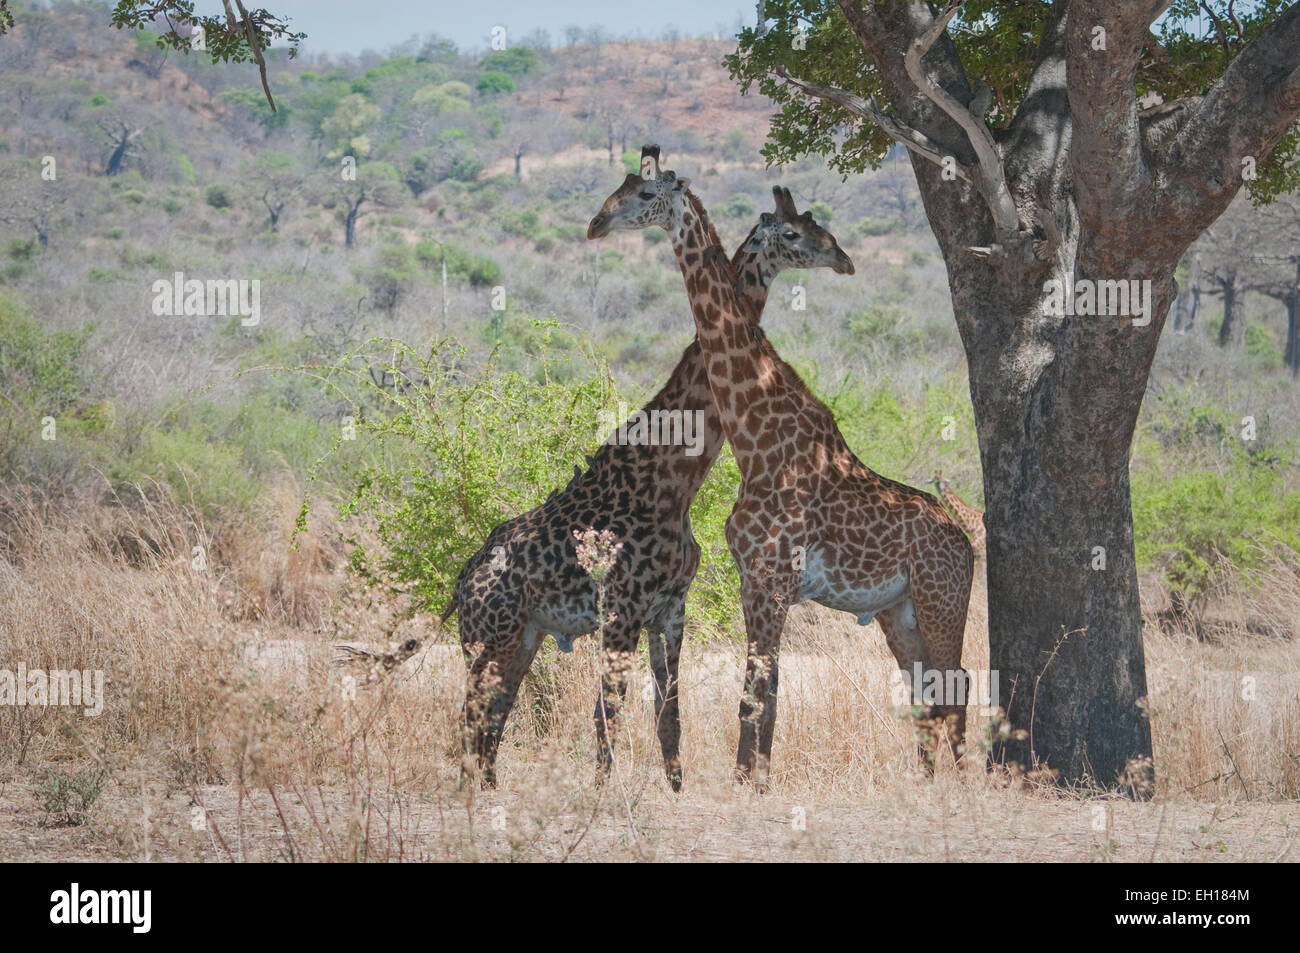 Two Masai giraffes standing by tree, necks crossed - Stock Image